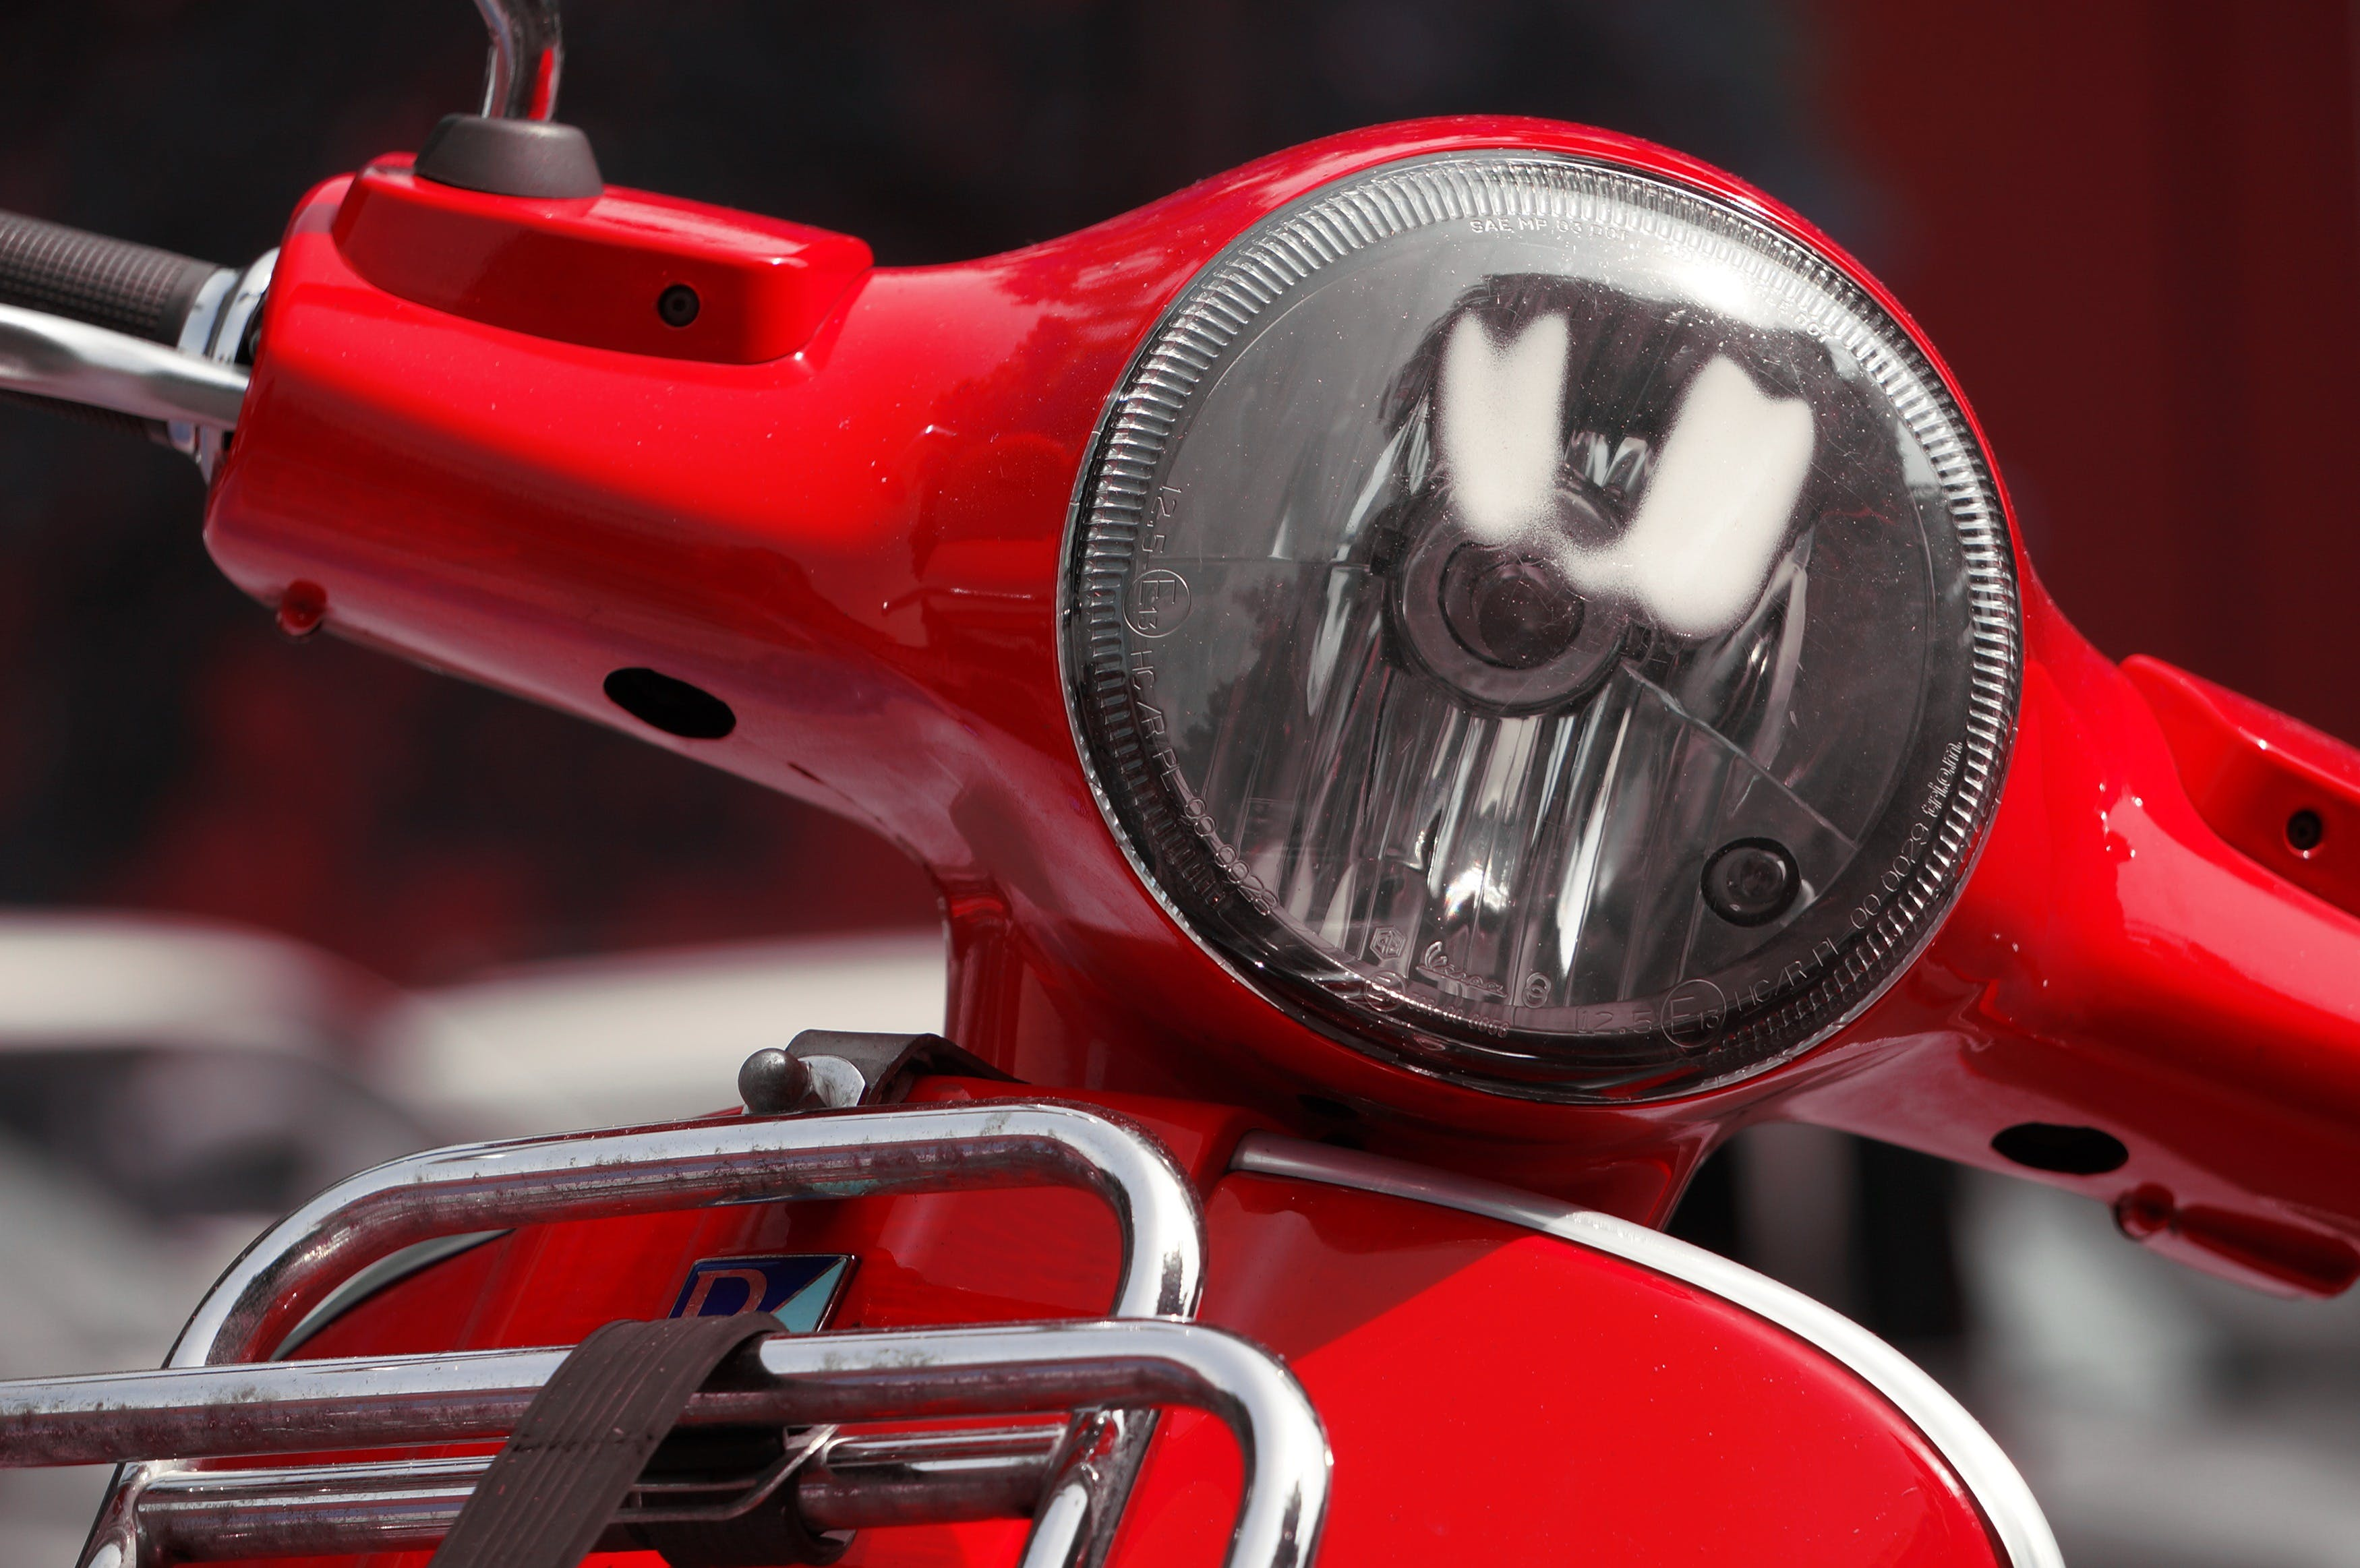 Silver Headlight on Red Motorcycle